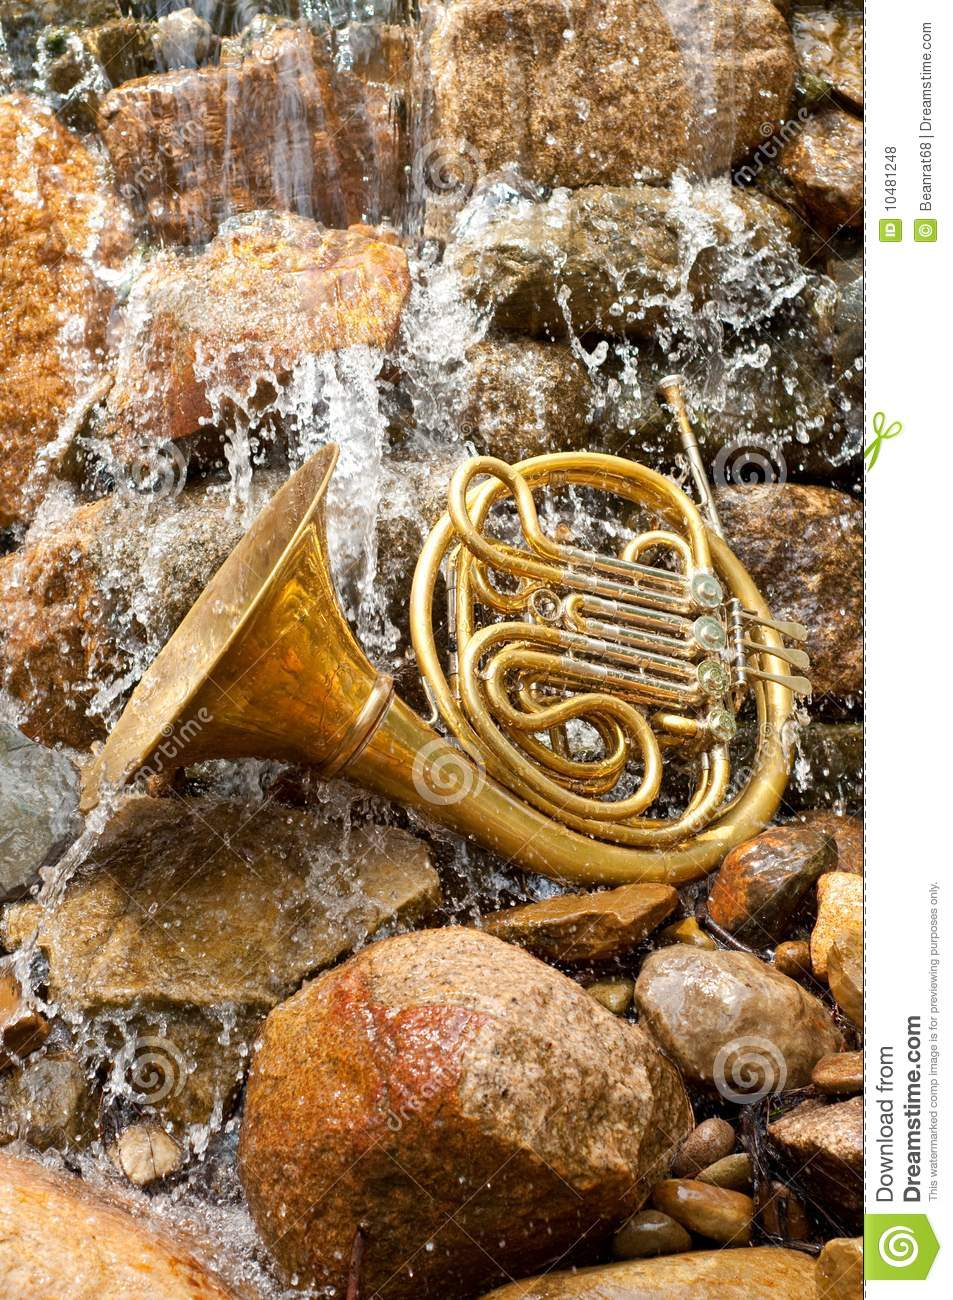 French Horn Instrument stock photo  Image of musical - 10481248